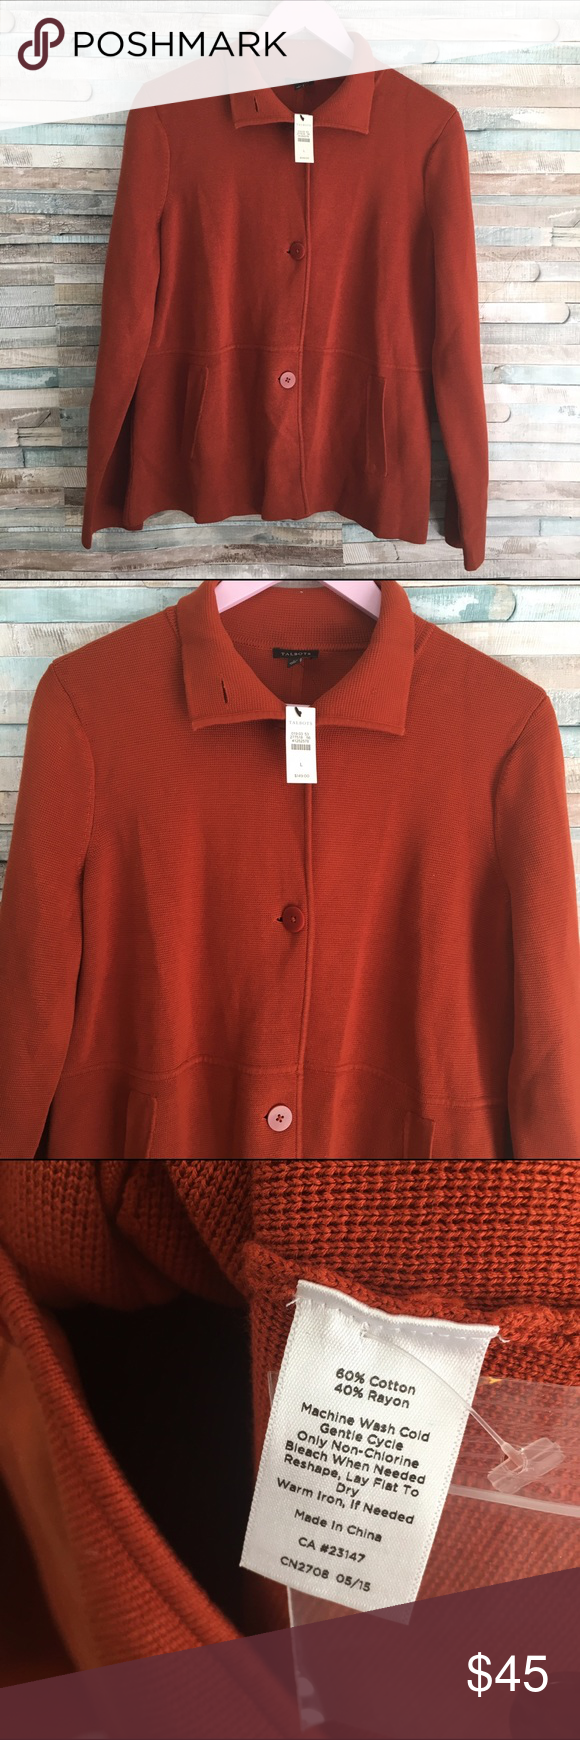 NWT talbots women's cardigan burnt orange L Burnt orange thick ...